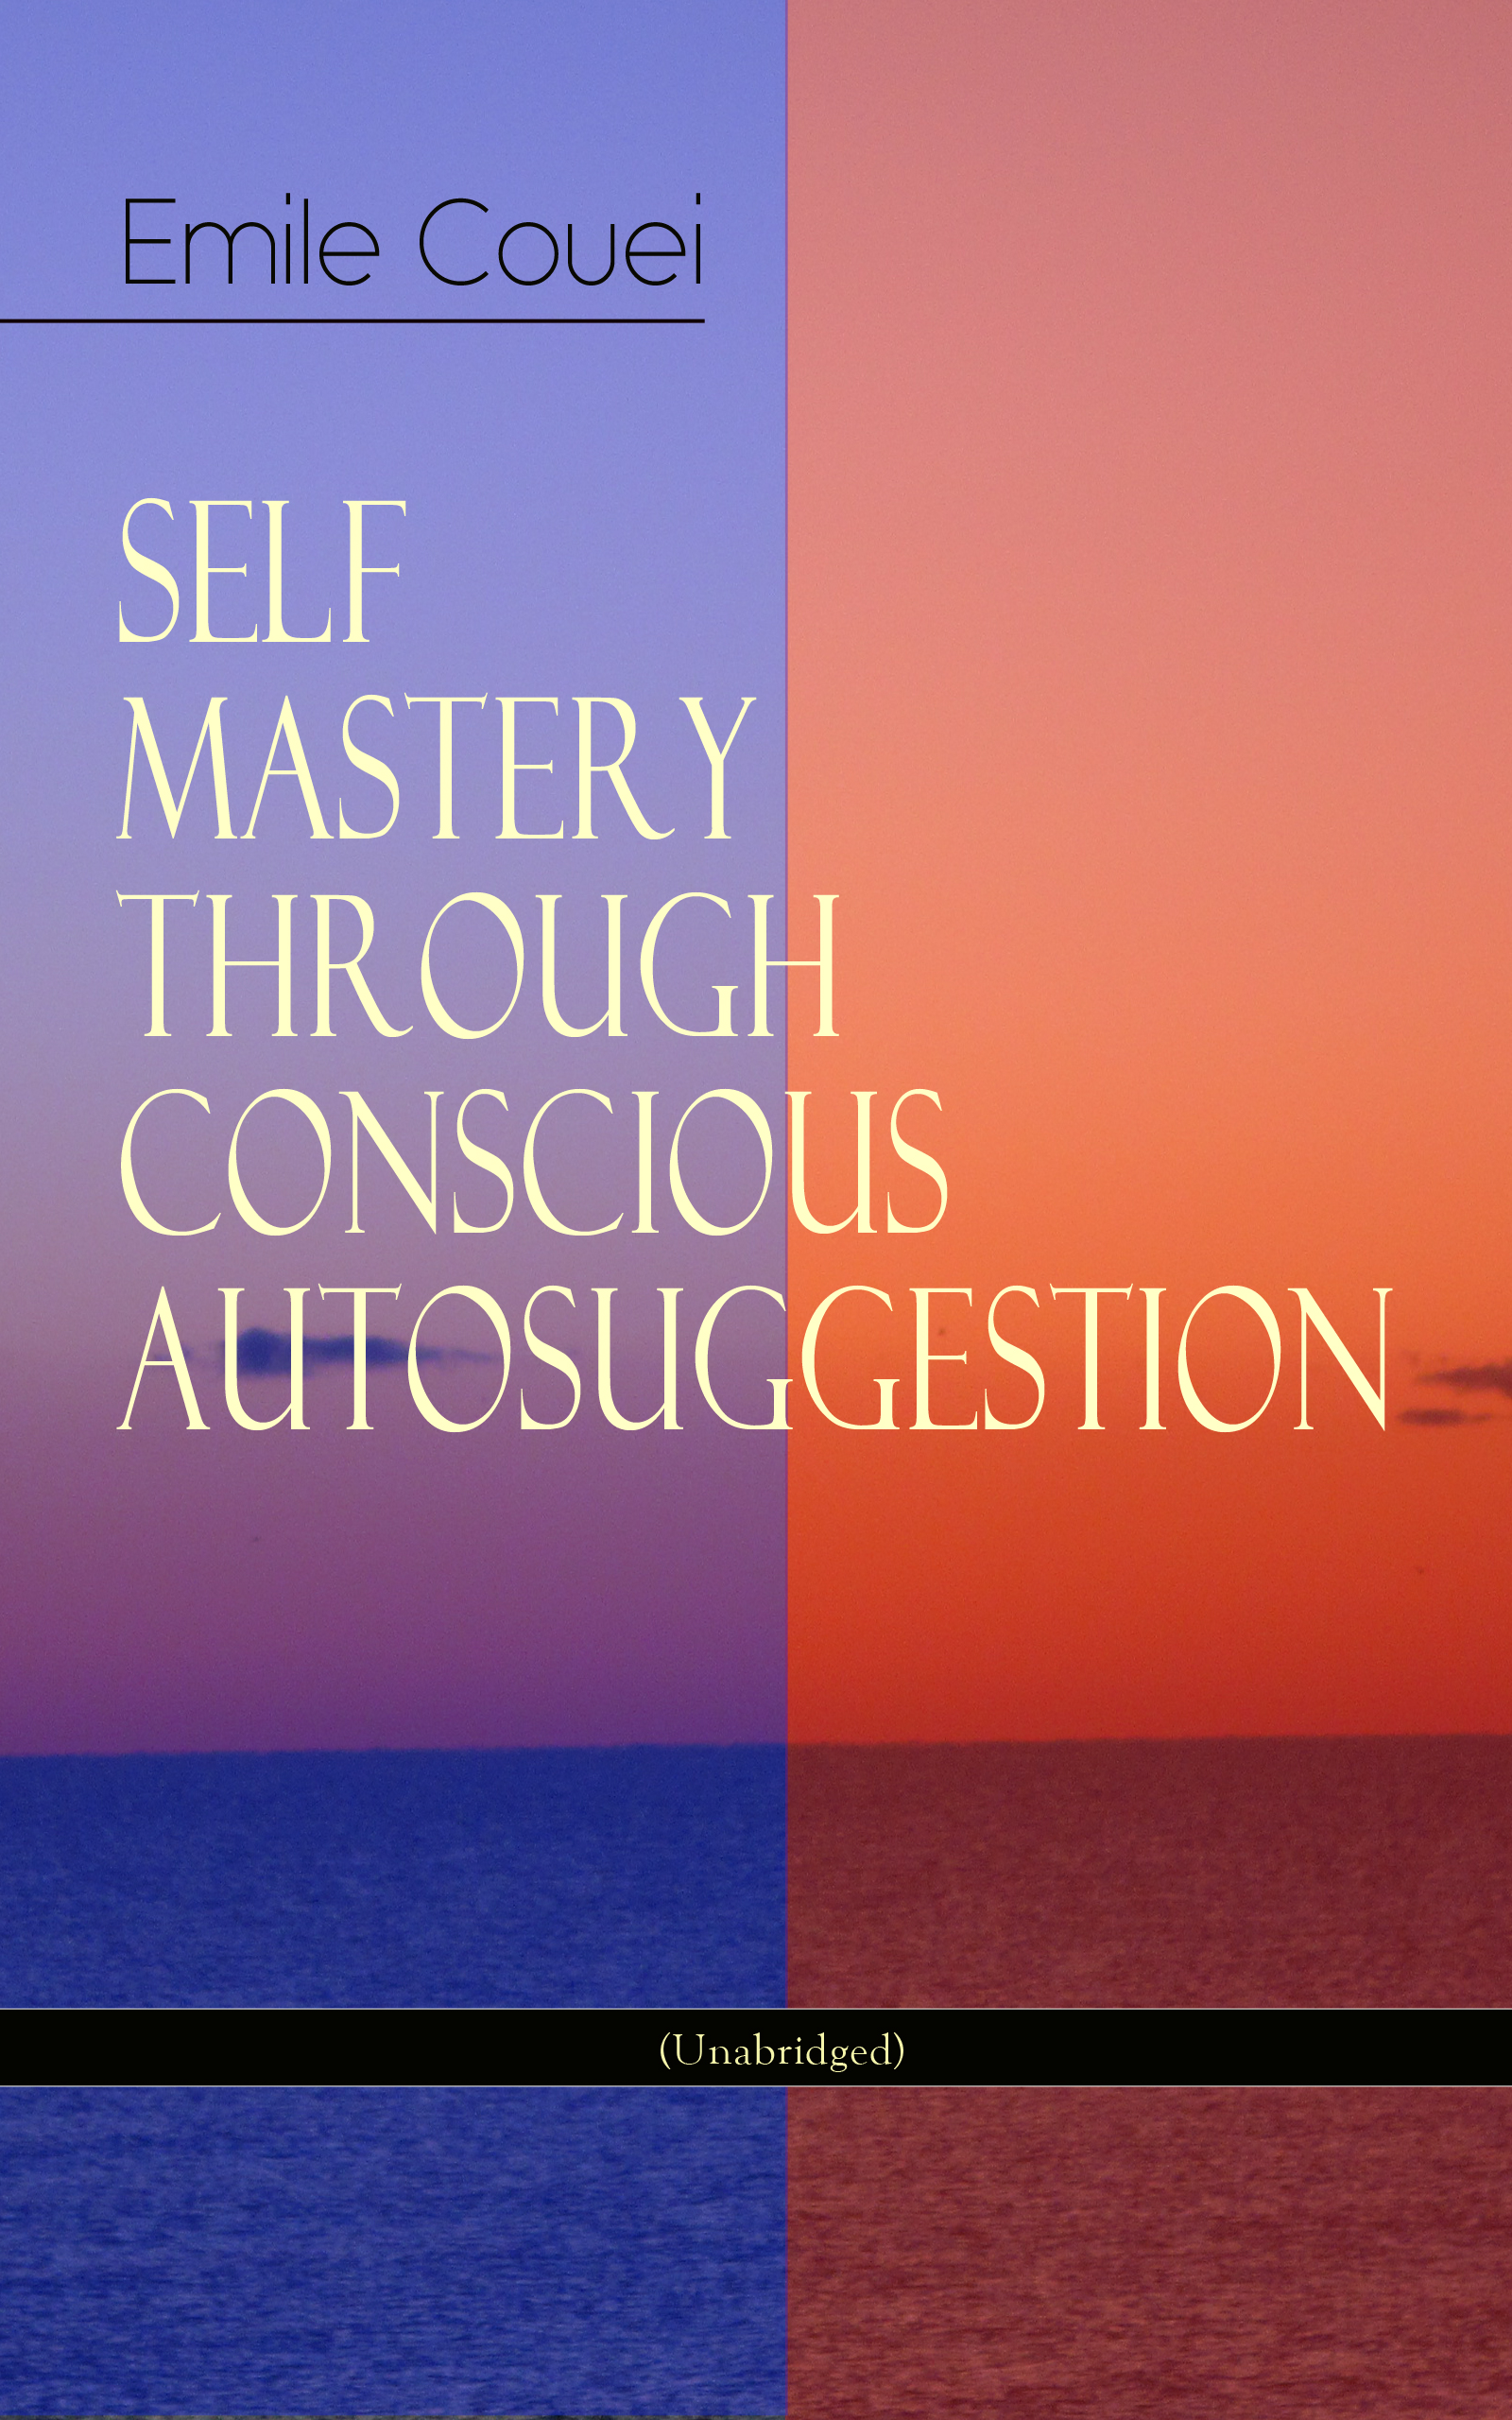 Emile Coue SELF MASTERY THROUGH CONSCIOUS AUTOSUGGESTION (Unabridged)